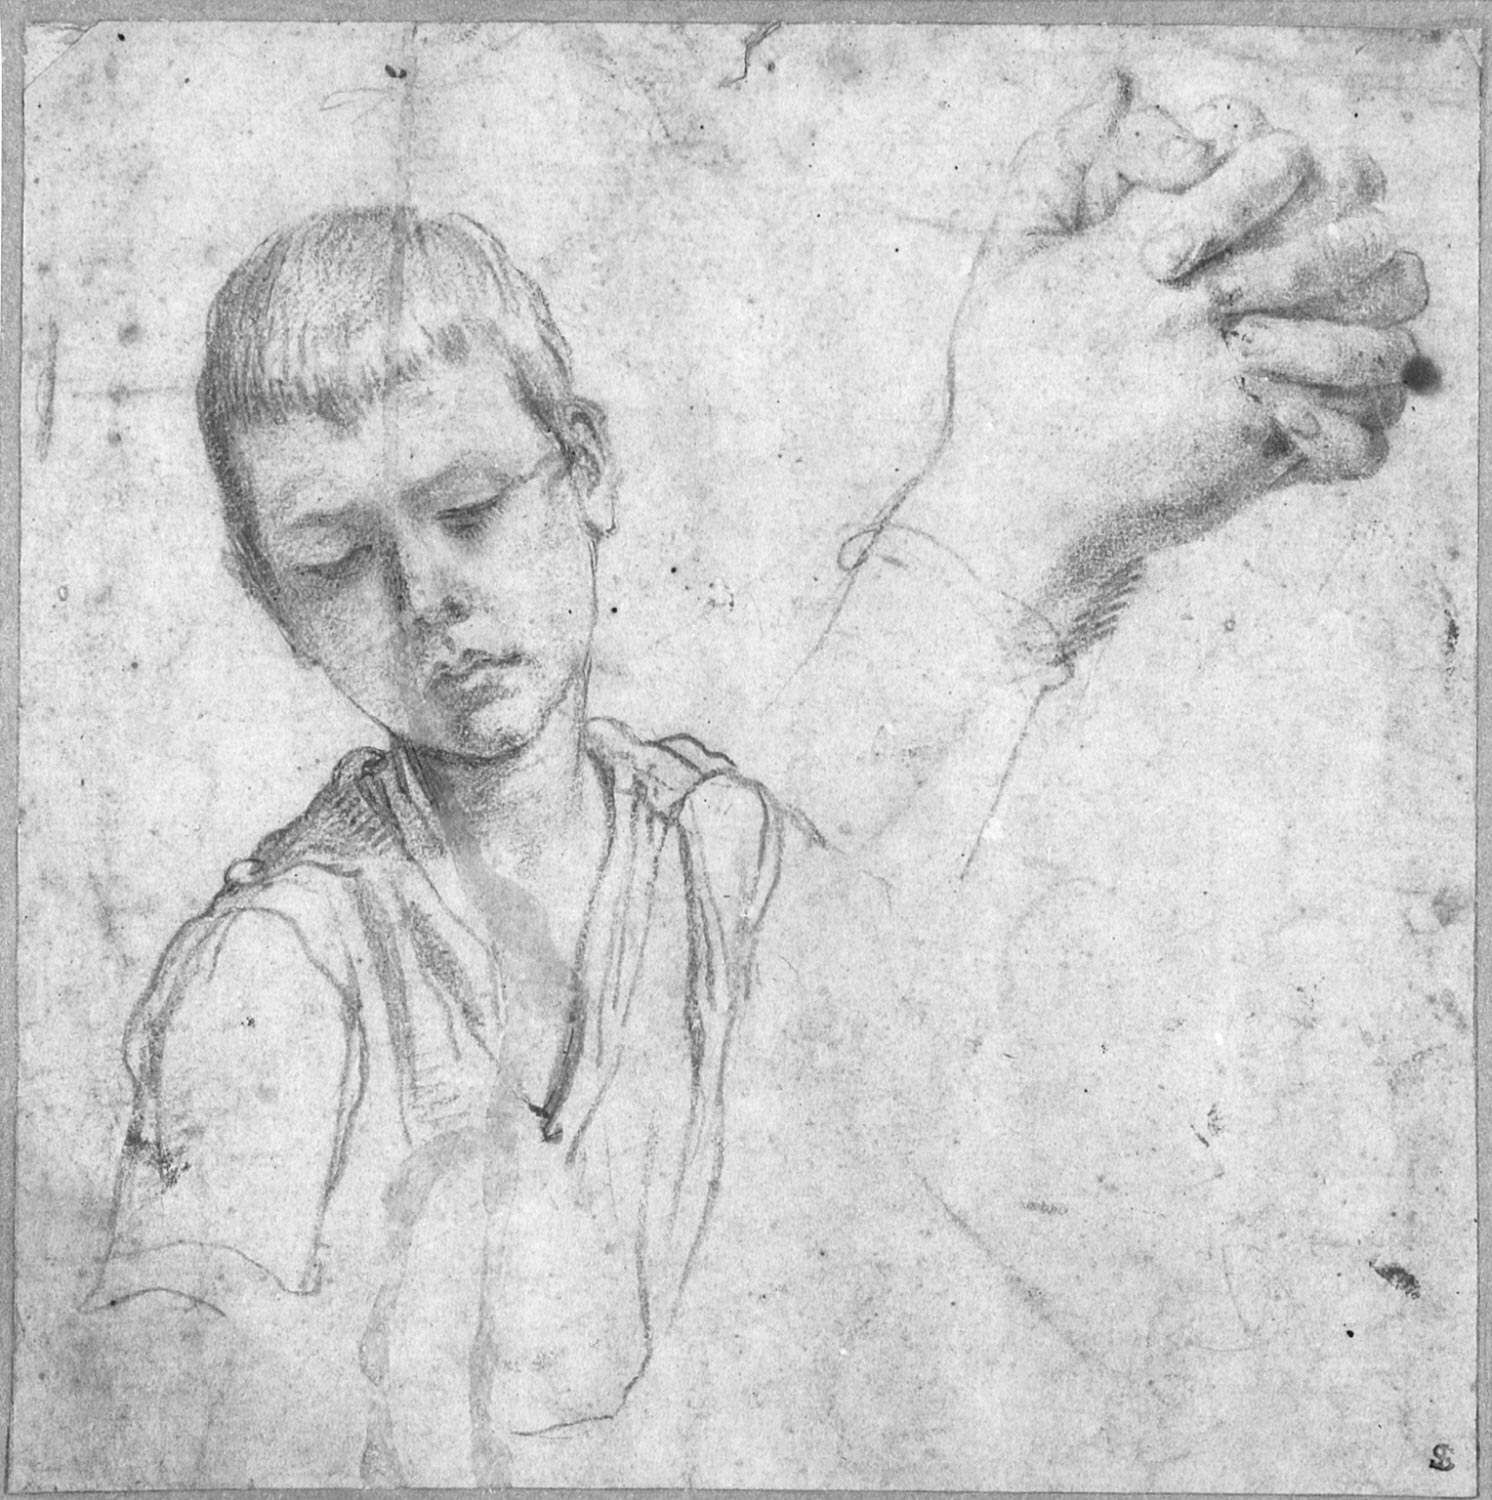 Half-Length Study for a Boy and Clasped Hands